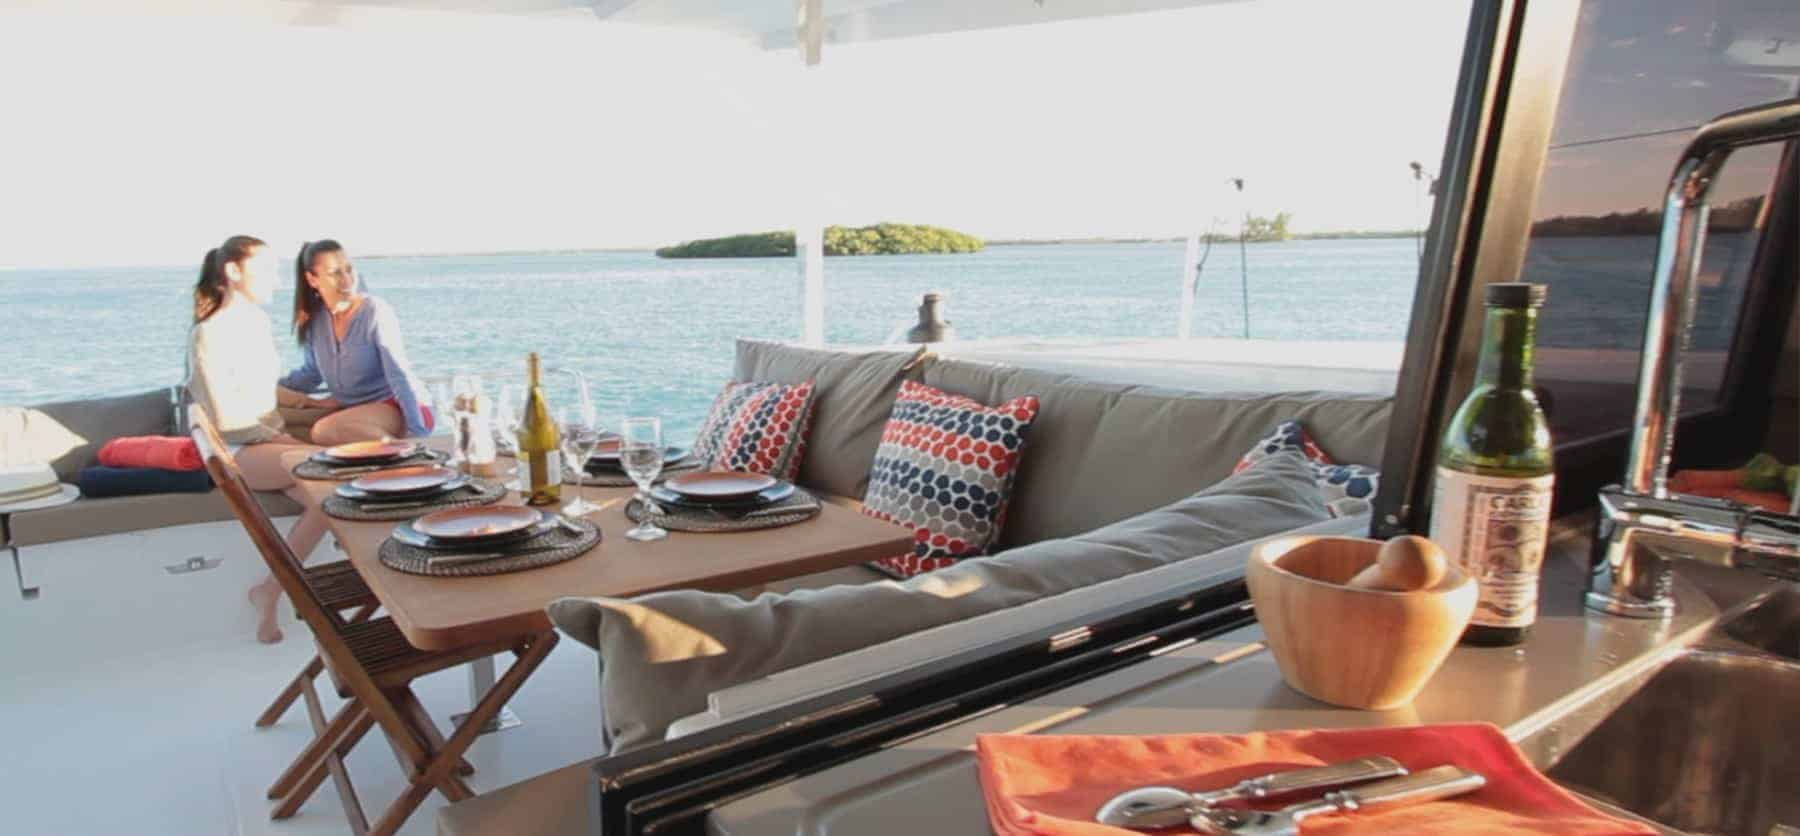 Two girls having a conversation on deck on a Fountaine Pajot Lucia 40 a sunny day and with a set dinner table